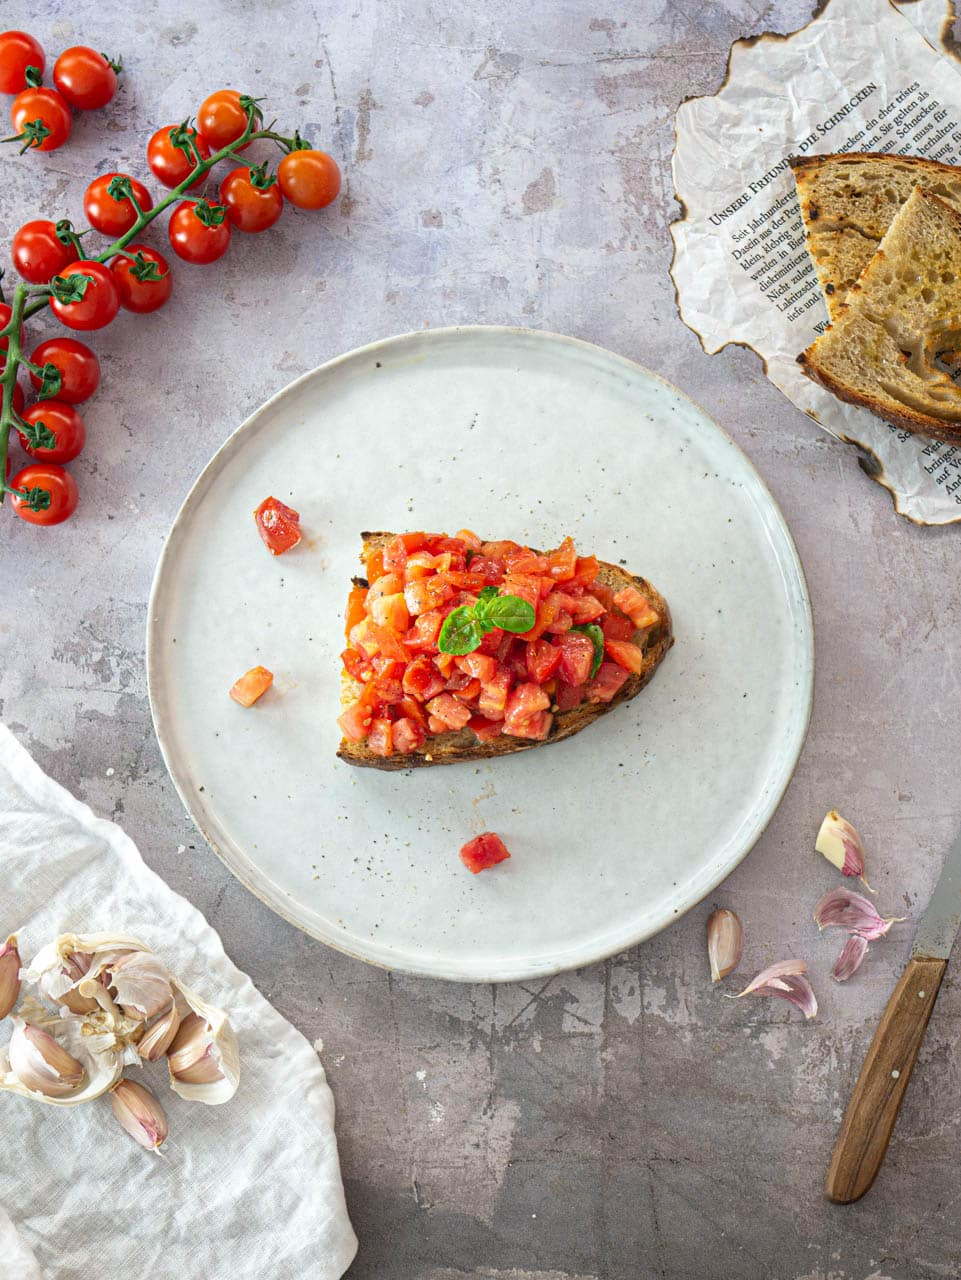 Bruschetta with tomatoes and basil on sourdough bread